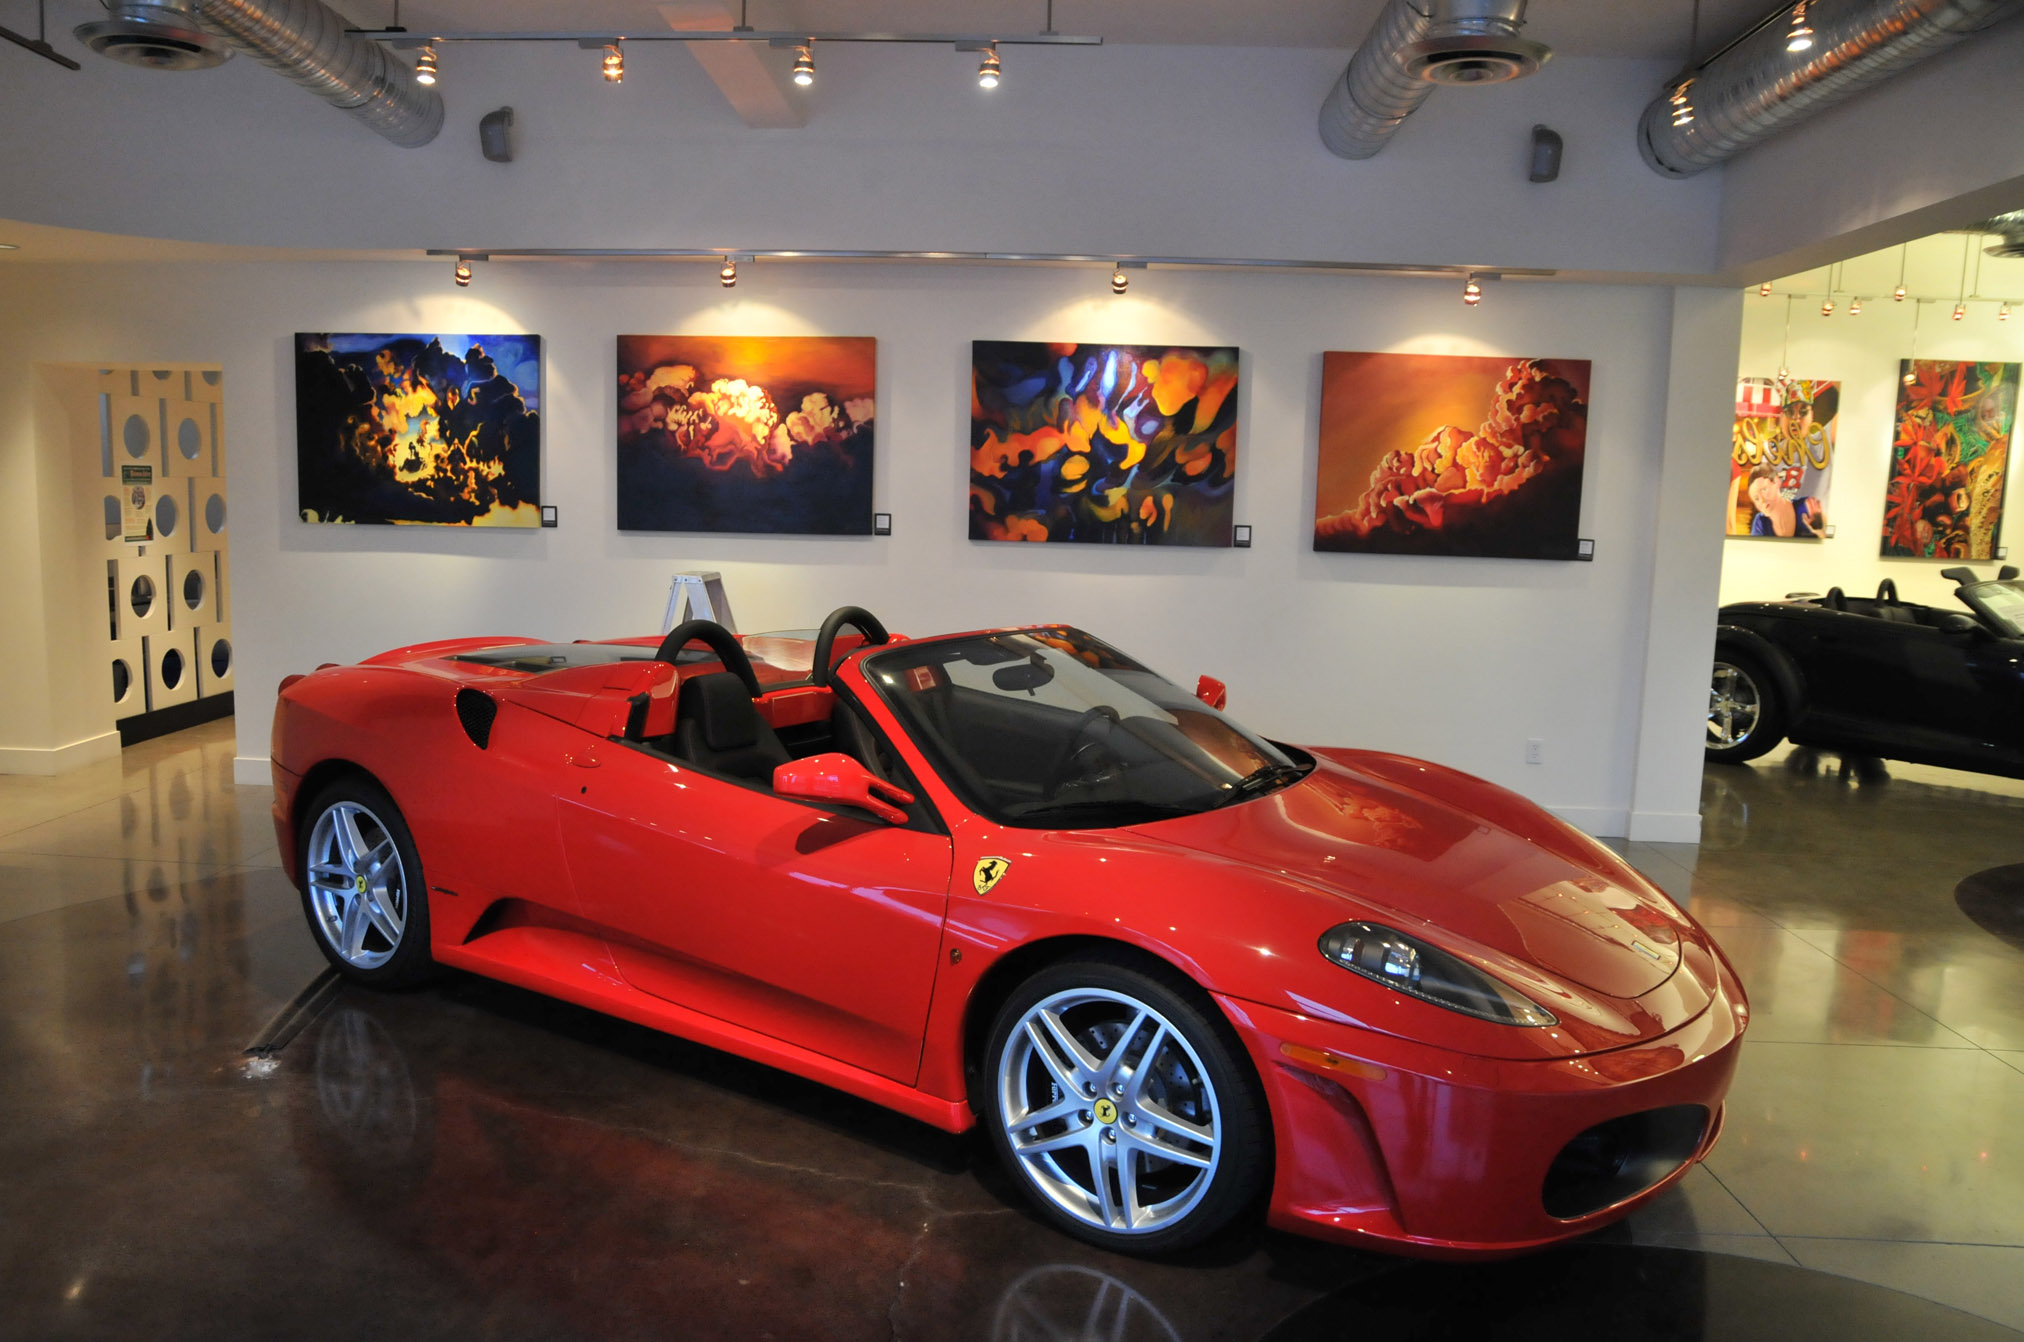 Canadian tax deductions on art